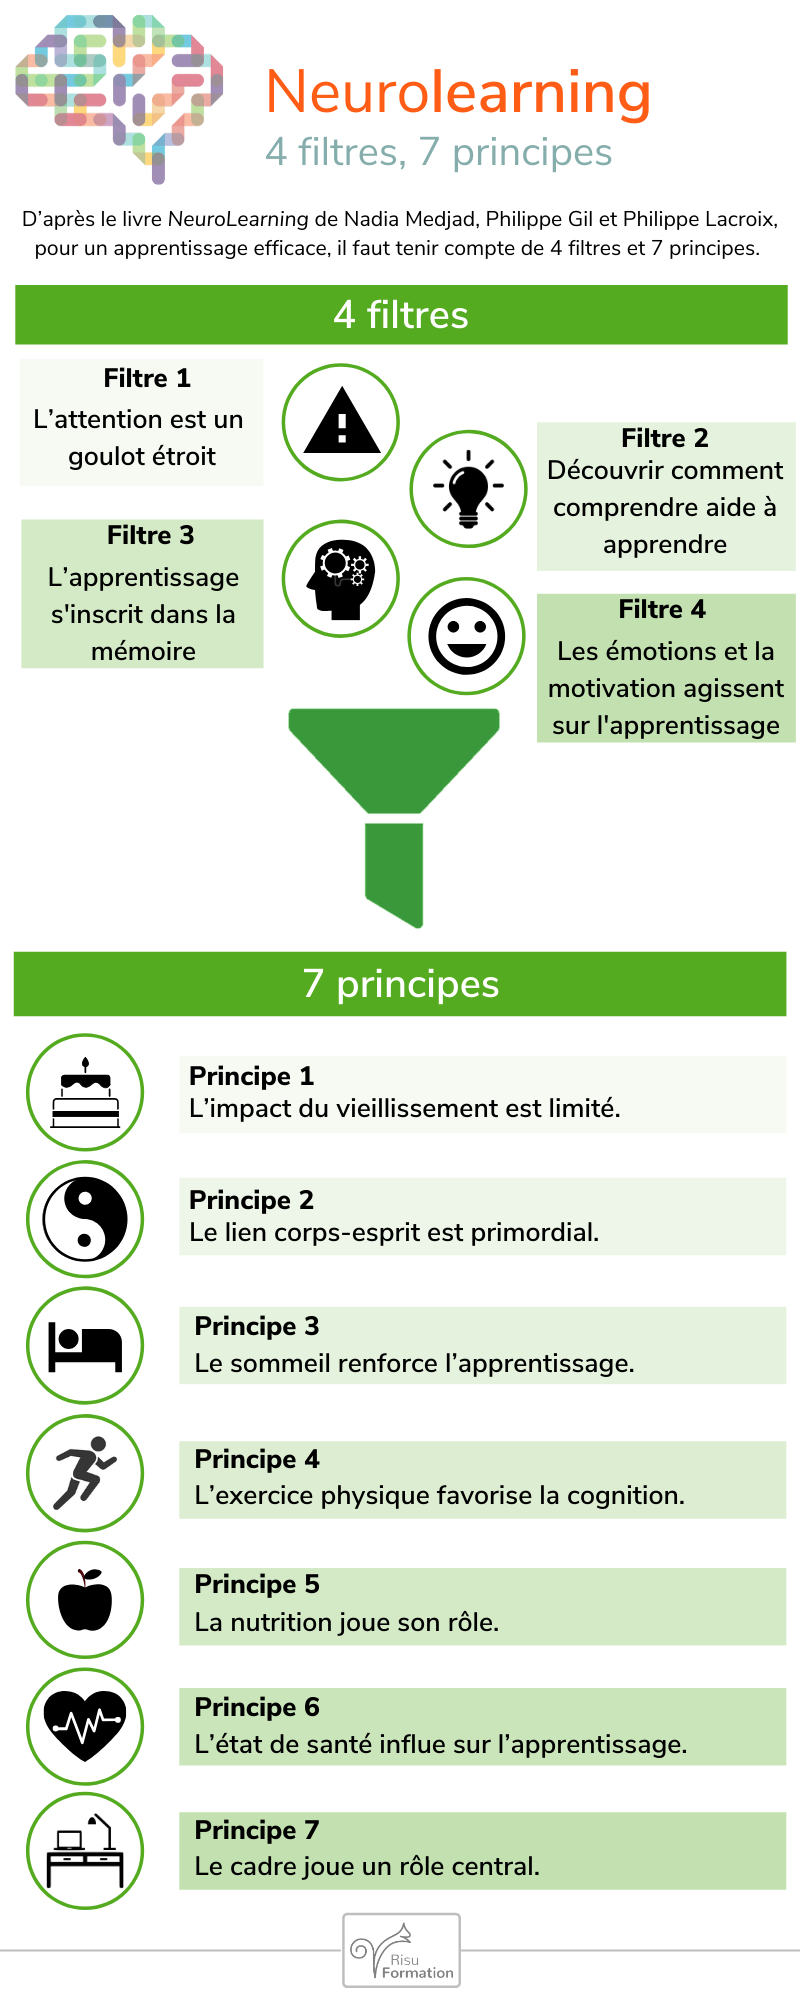 Infographie : neurolearning, 4 filtres, 7 principes.